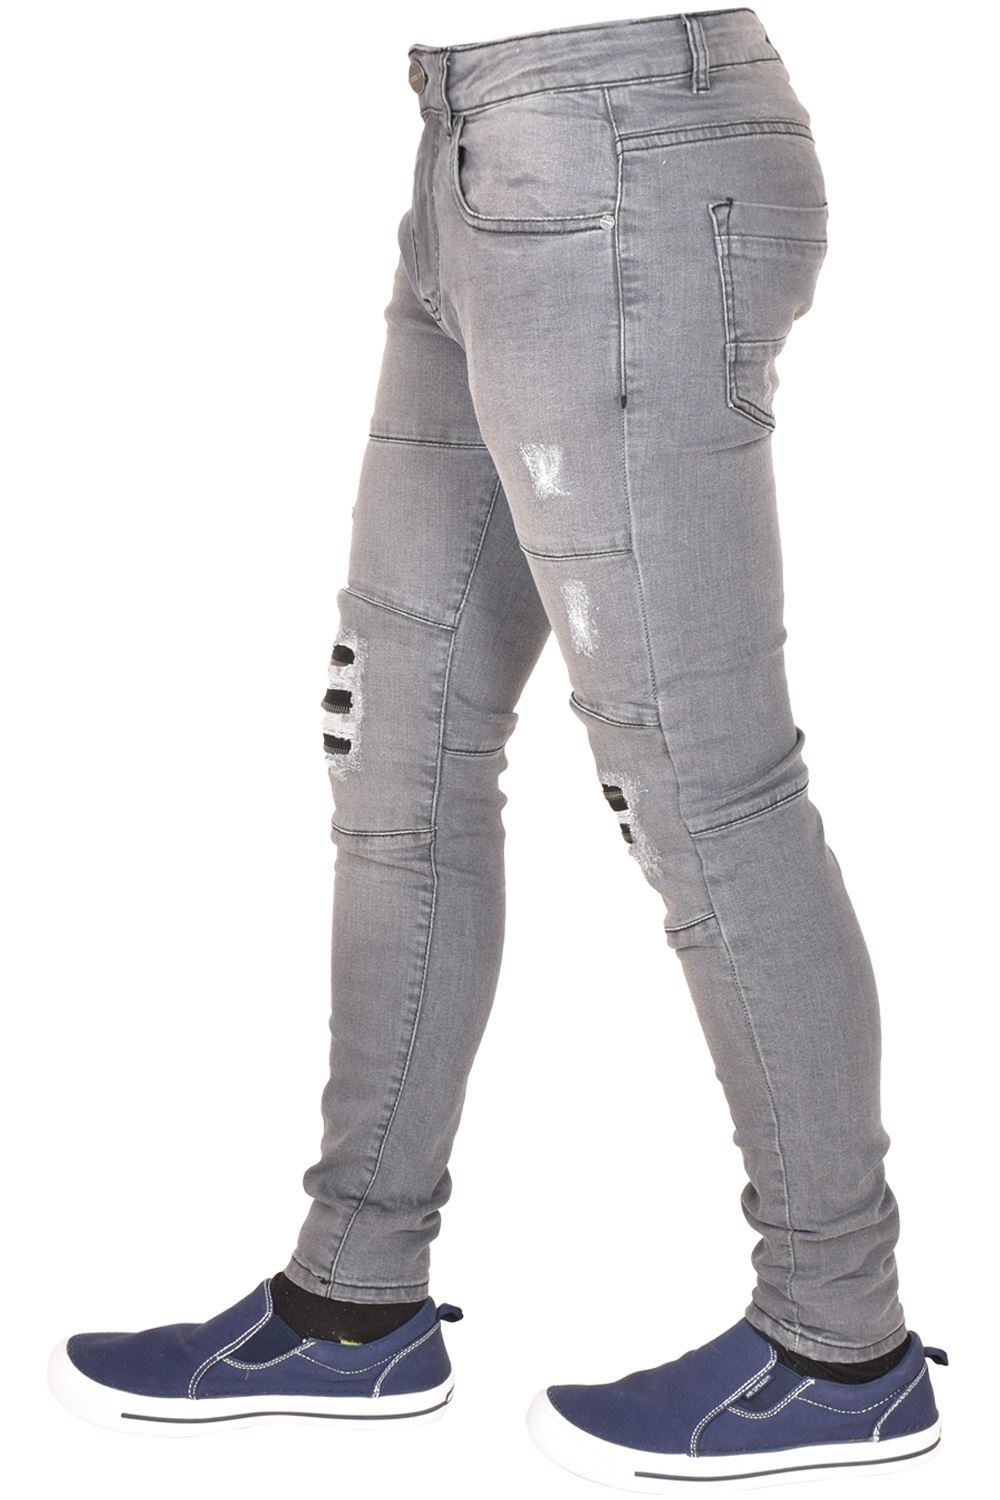 Enzo-Mens-Ripped-Jeans-Skinny-Slim-Fit-Denim-Pants-Casual-Trousers-Size-28-40 thumbnail 4